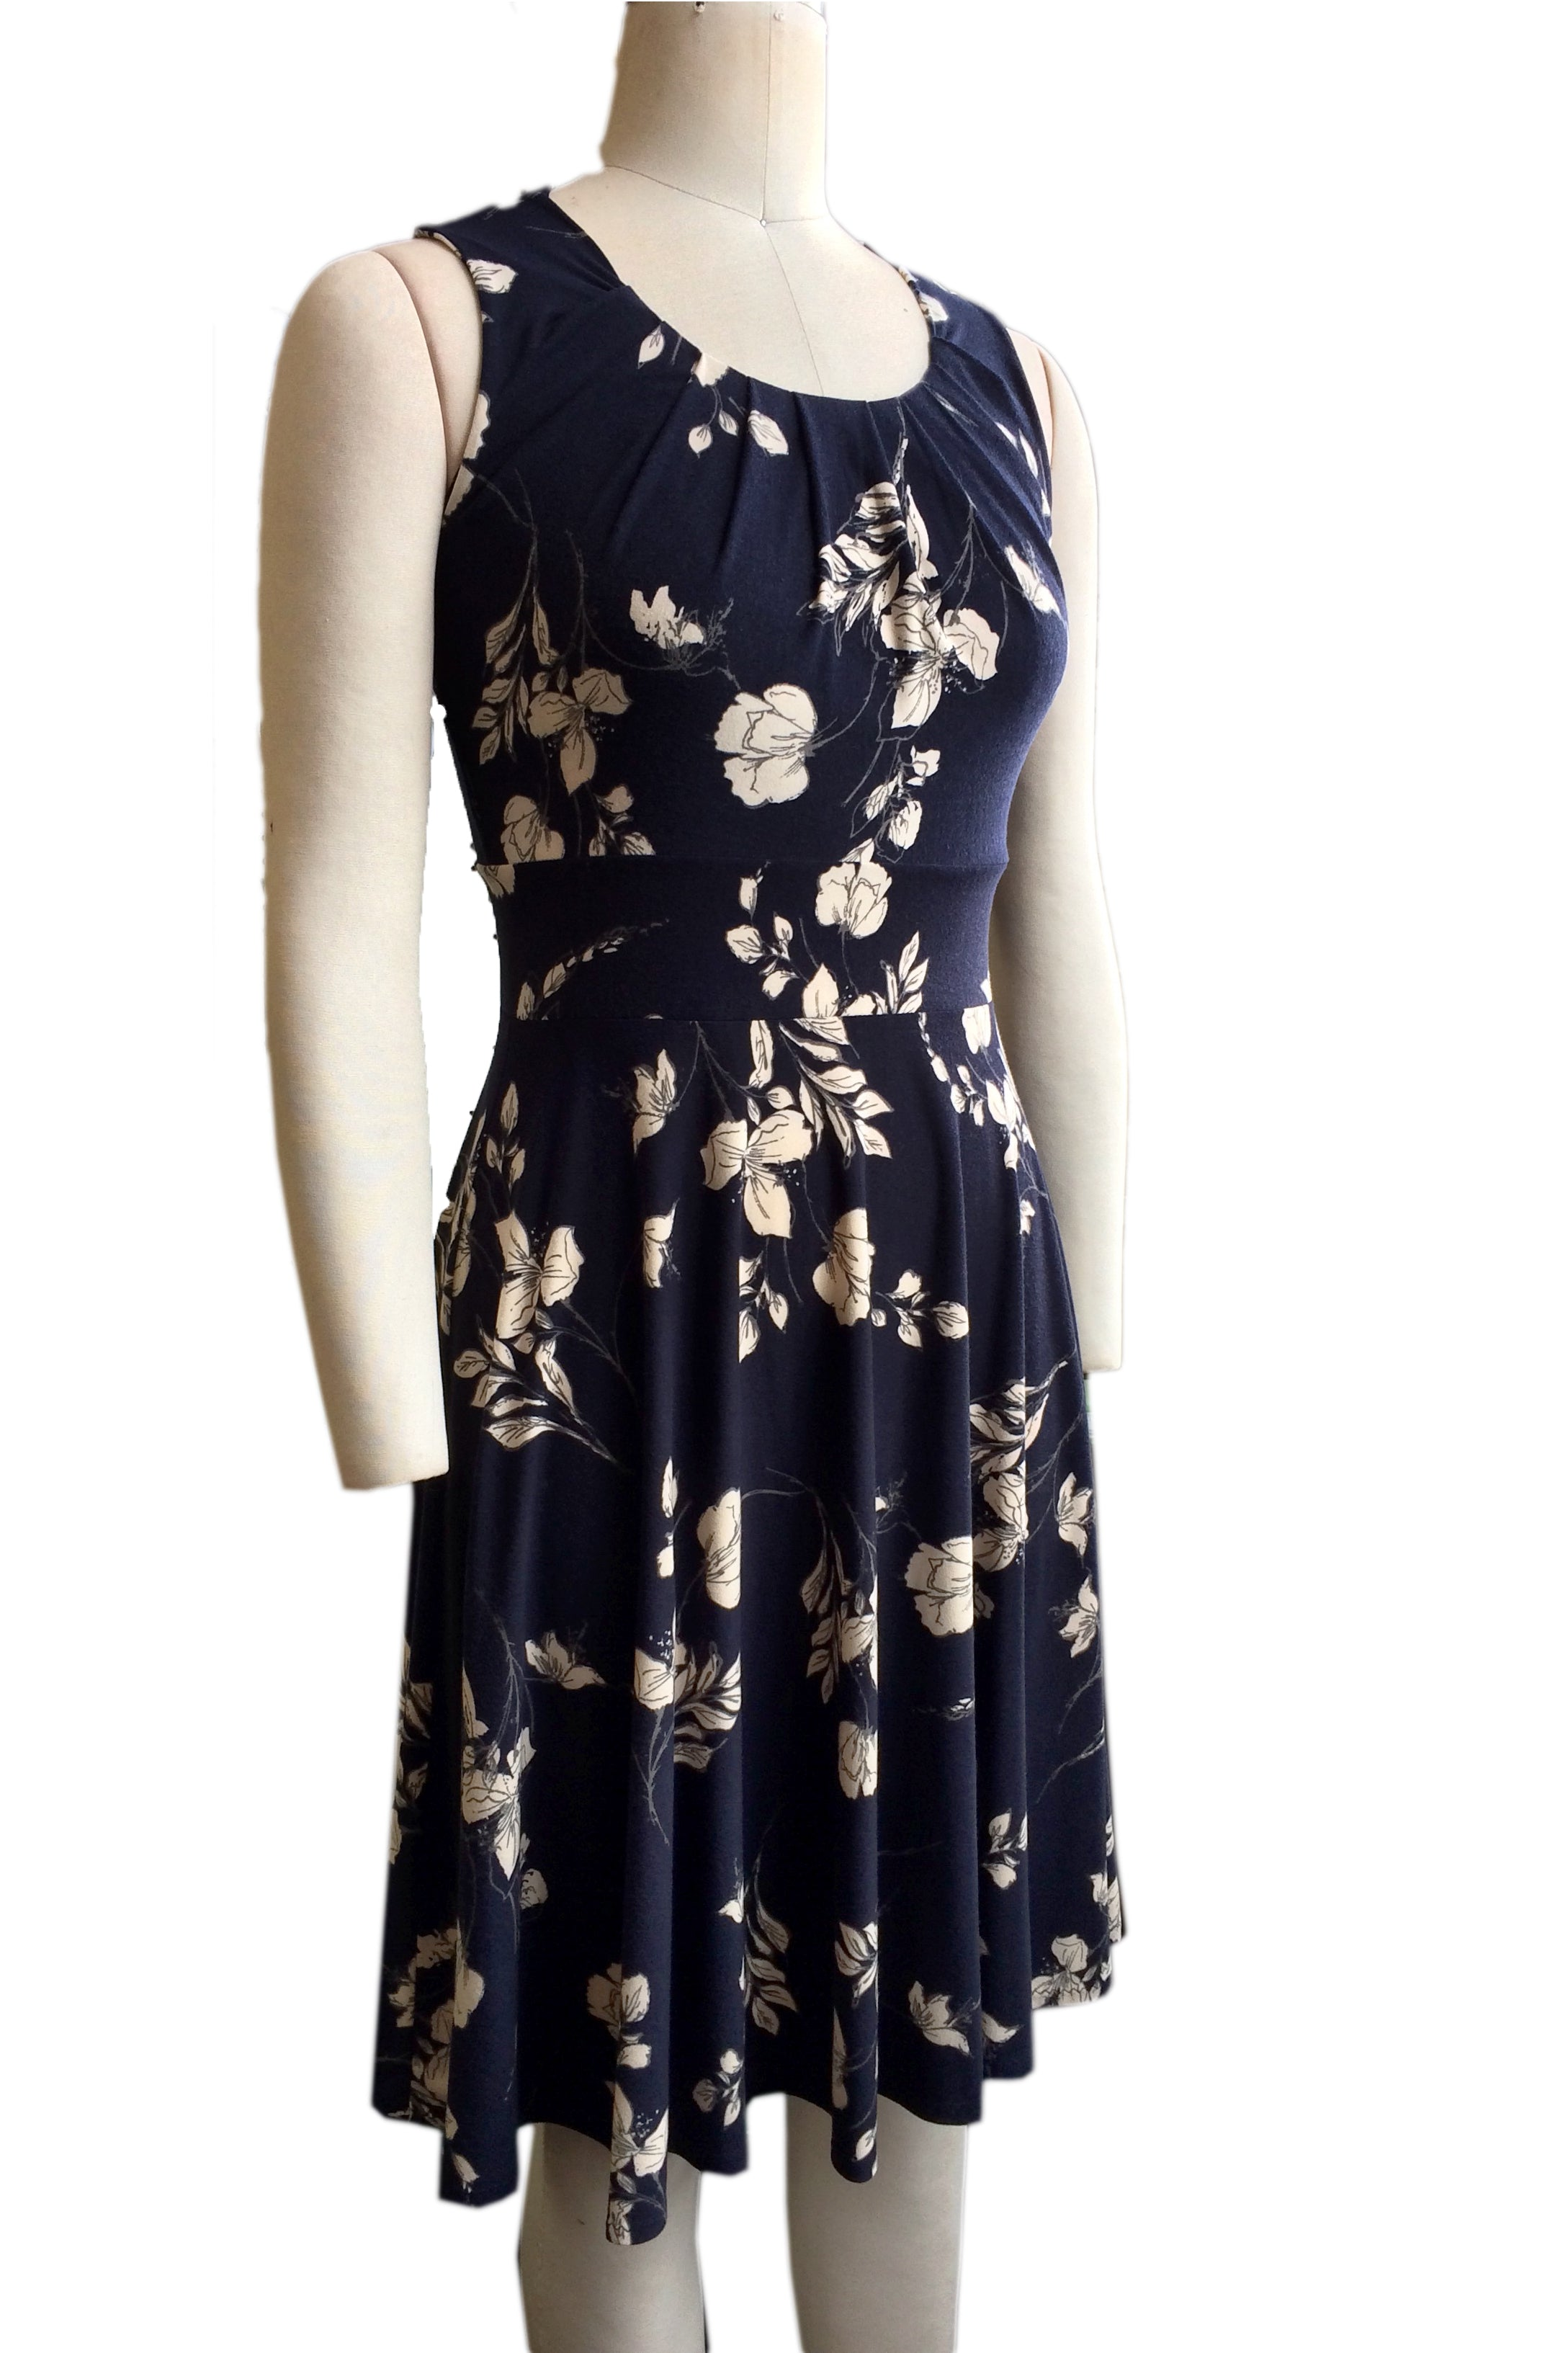 Rio Dress by Hericher, Navy Floral, gathered scoop neck, wide waistband, sleeveless, fit and flare shape, sizes XS to XL, made in Quebec